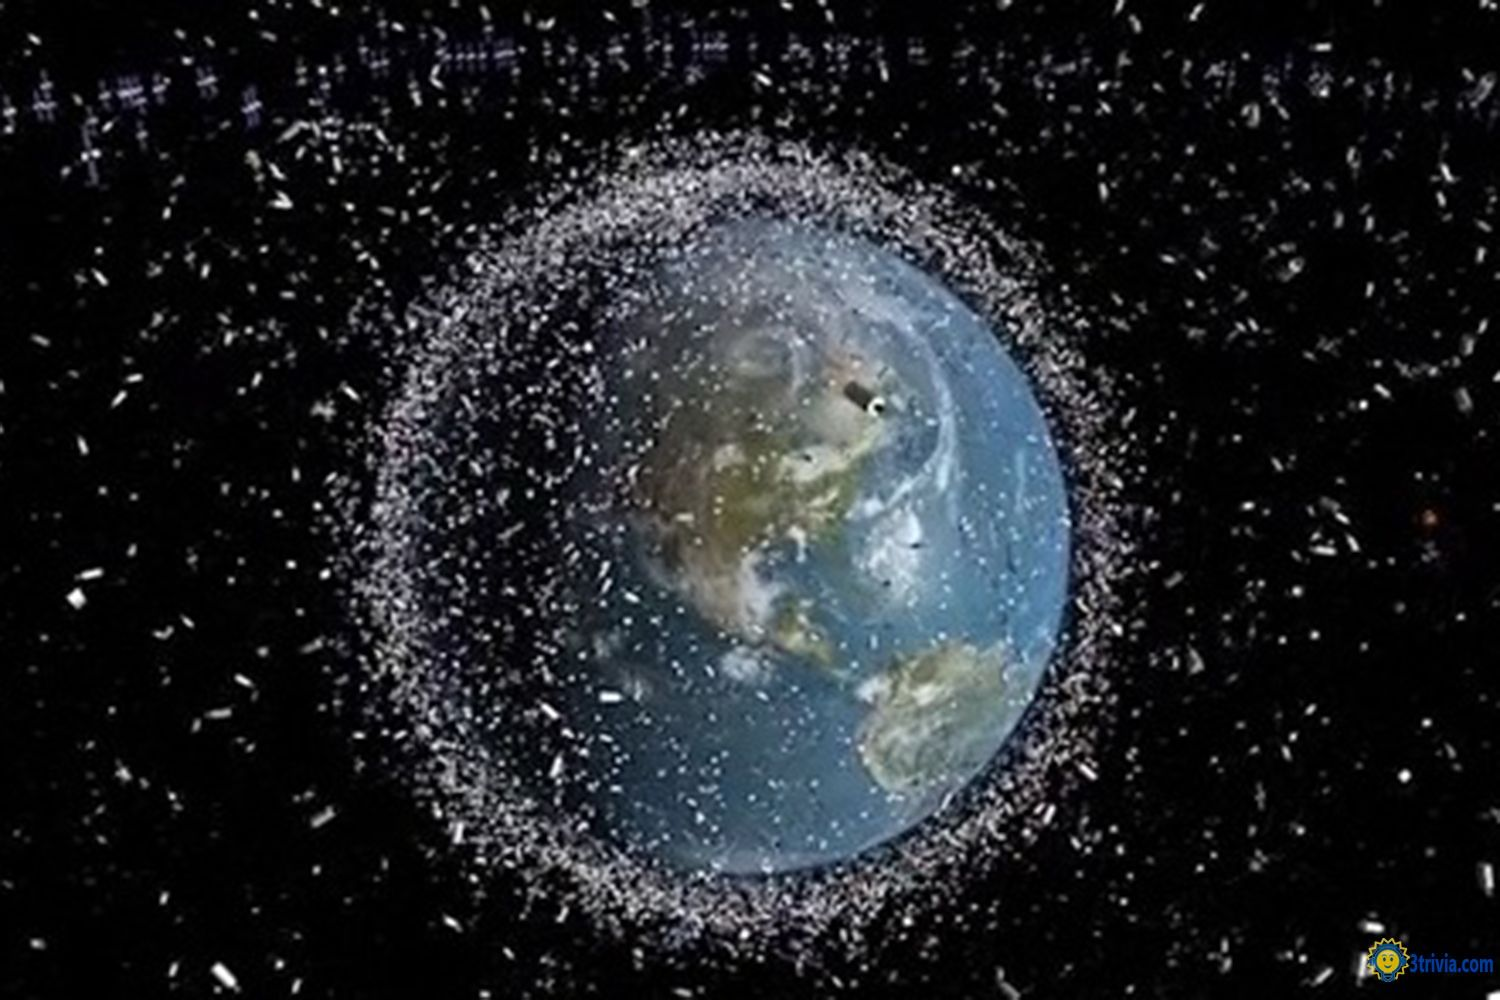 Satellite Debris of Dangerous Objects Flying Around the Earth 3trivia